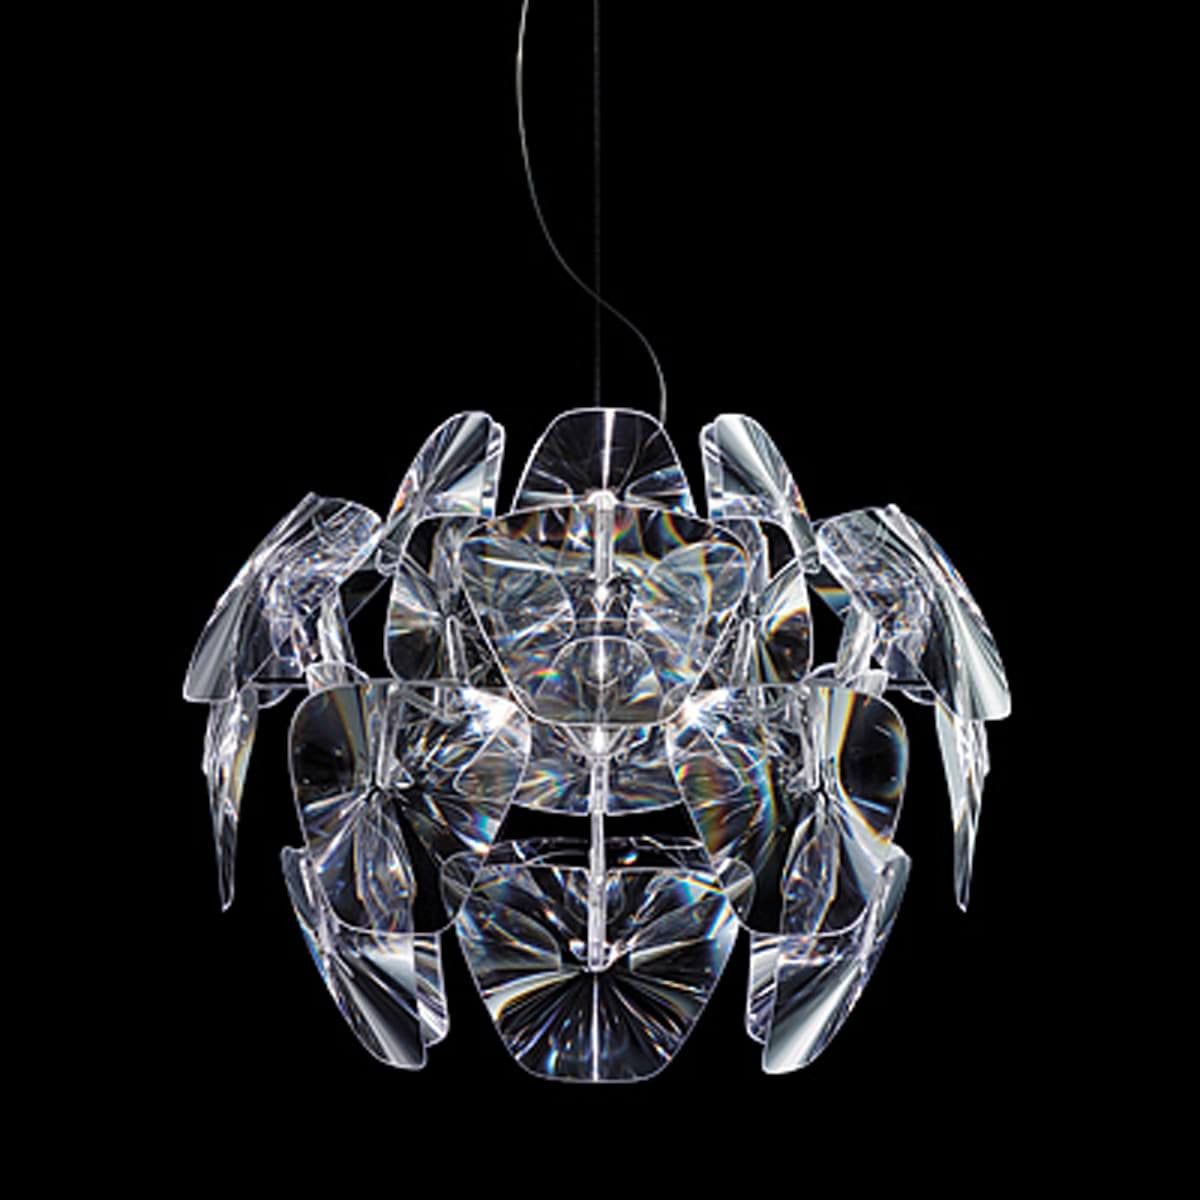 Azzardo 3d small clear acrylic pendant light chandelier more dcor acrylic pendant light chandelier md2091 3 hover to zoom aloadofball Images